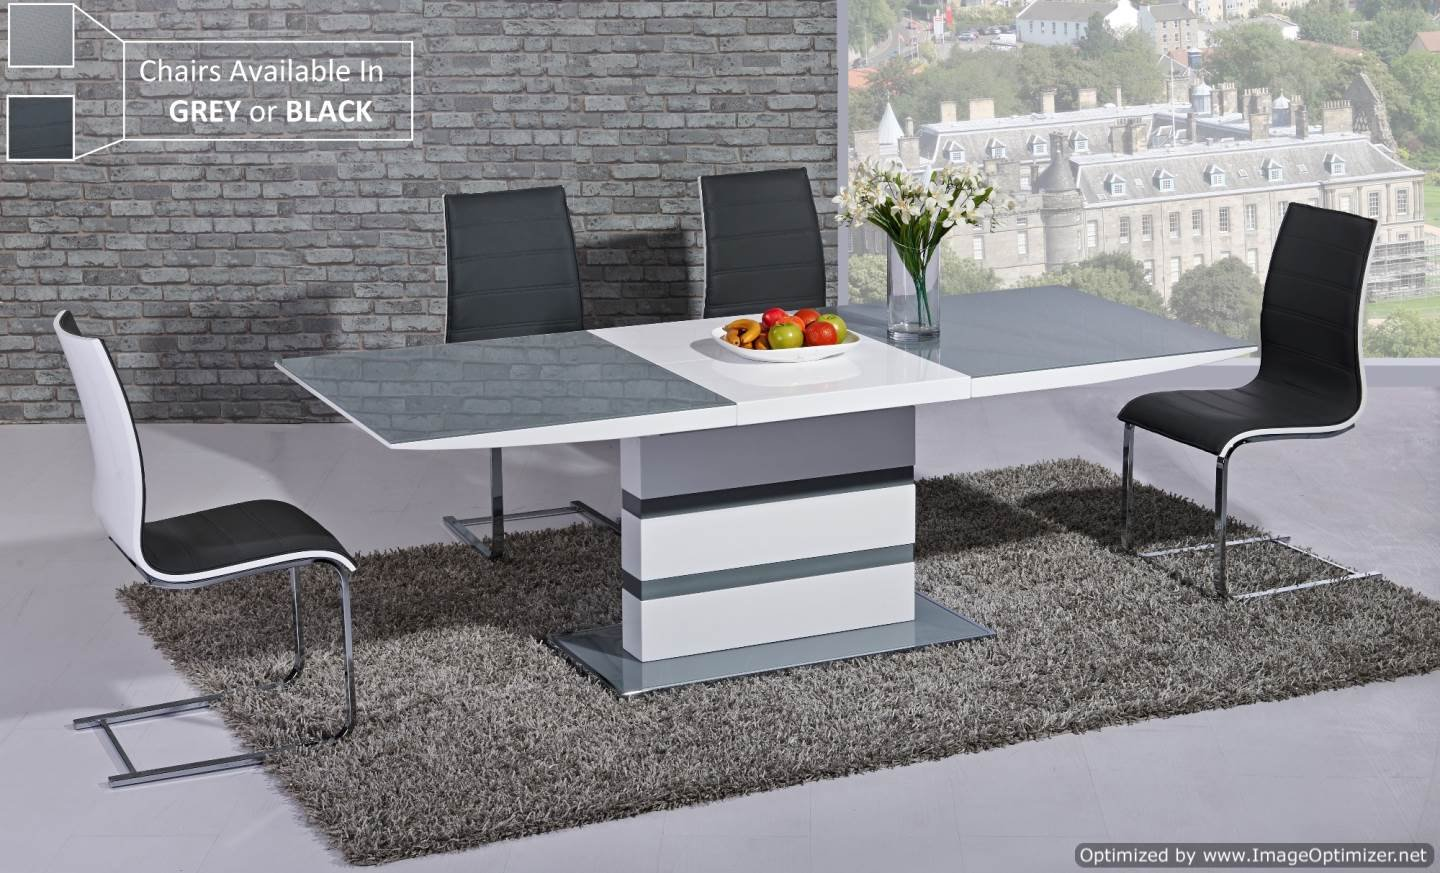 arctic extending dining table in grey from giatalia  extending  - arctic extending dining table in grey from giatalia  extending function very stylish  contemporary italian dining amazoncouk kitchen  home